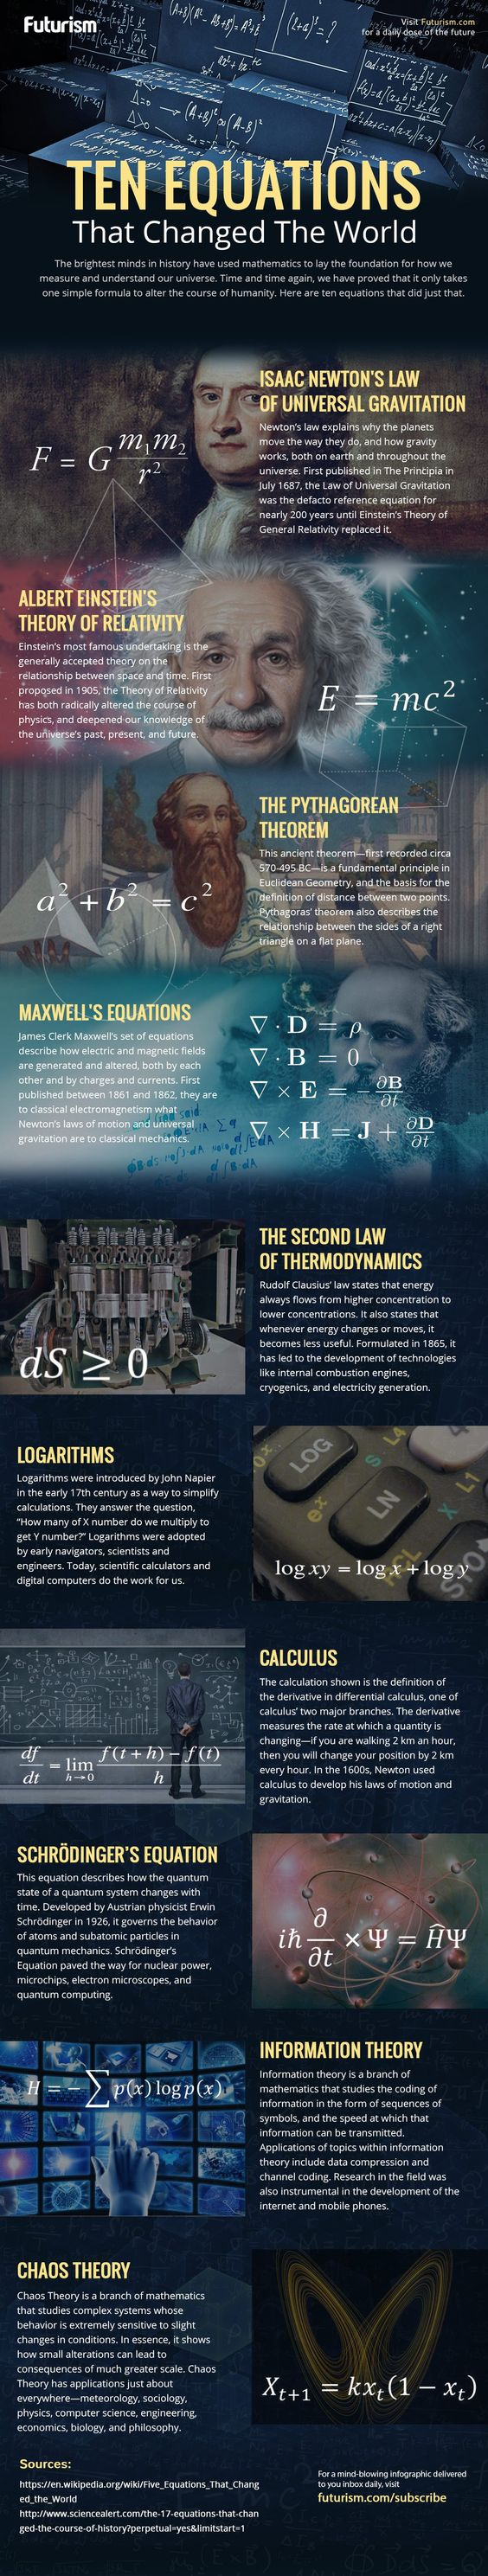 10 Maths Equations That Changed The World